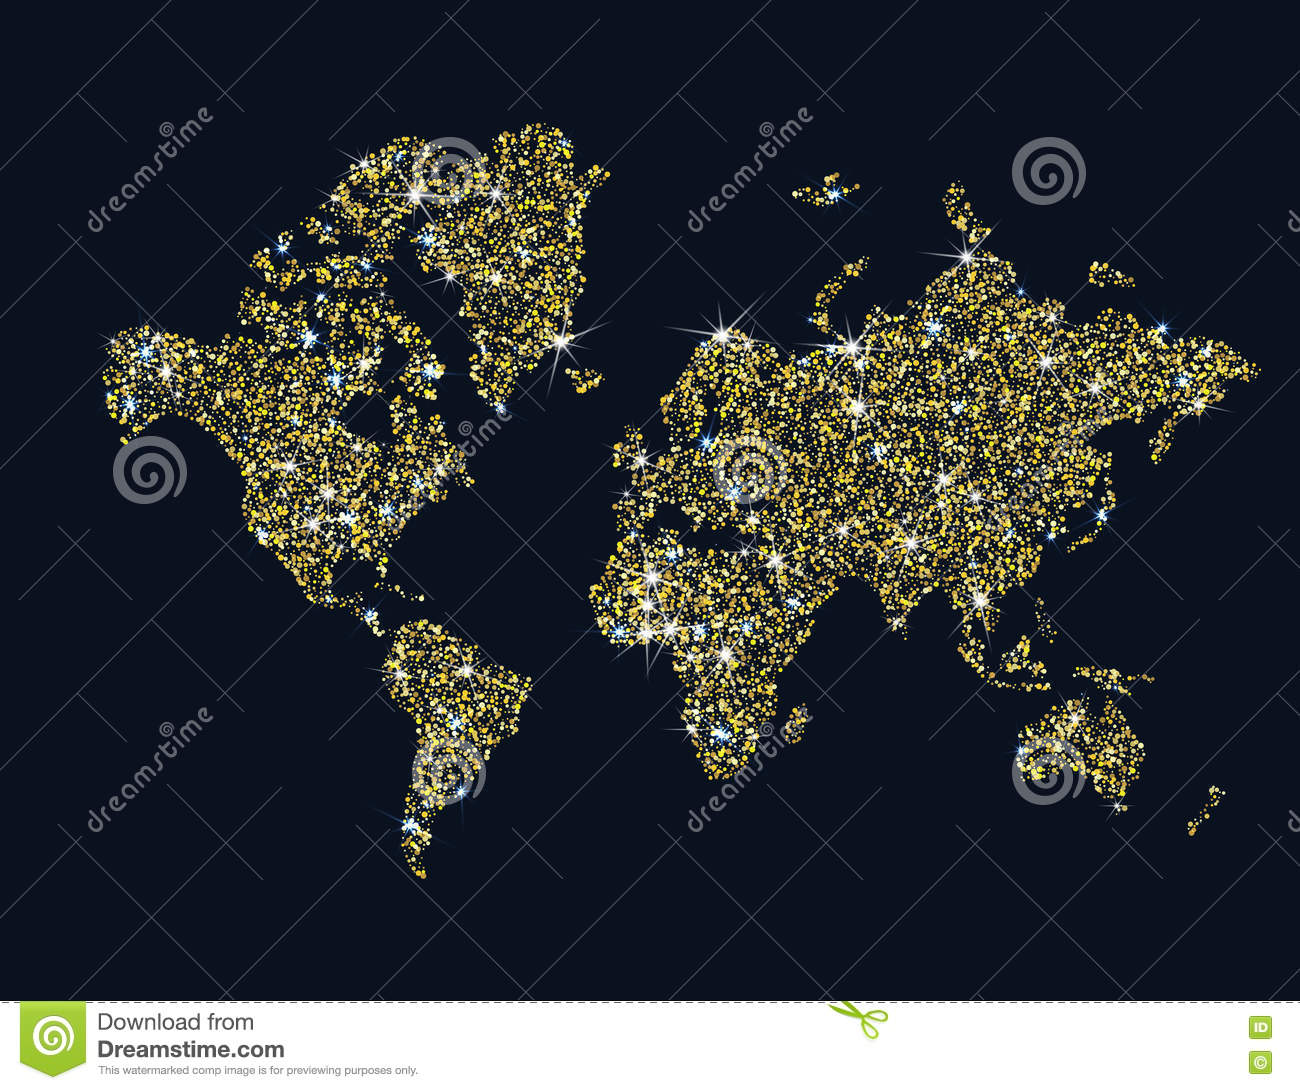 Gold Sparkling World Map Royalty Free Stock Photos